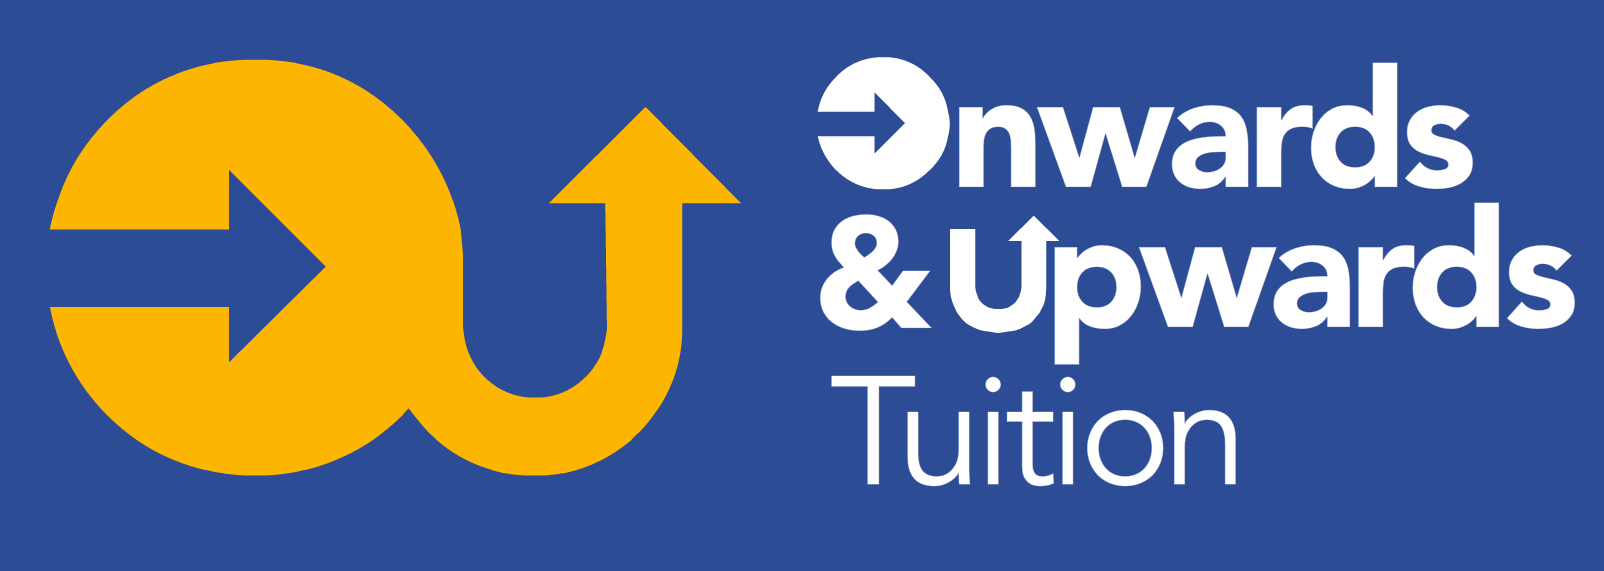 1st Class Online Tuition – Onwards and Upwards